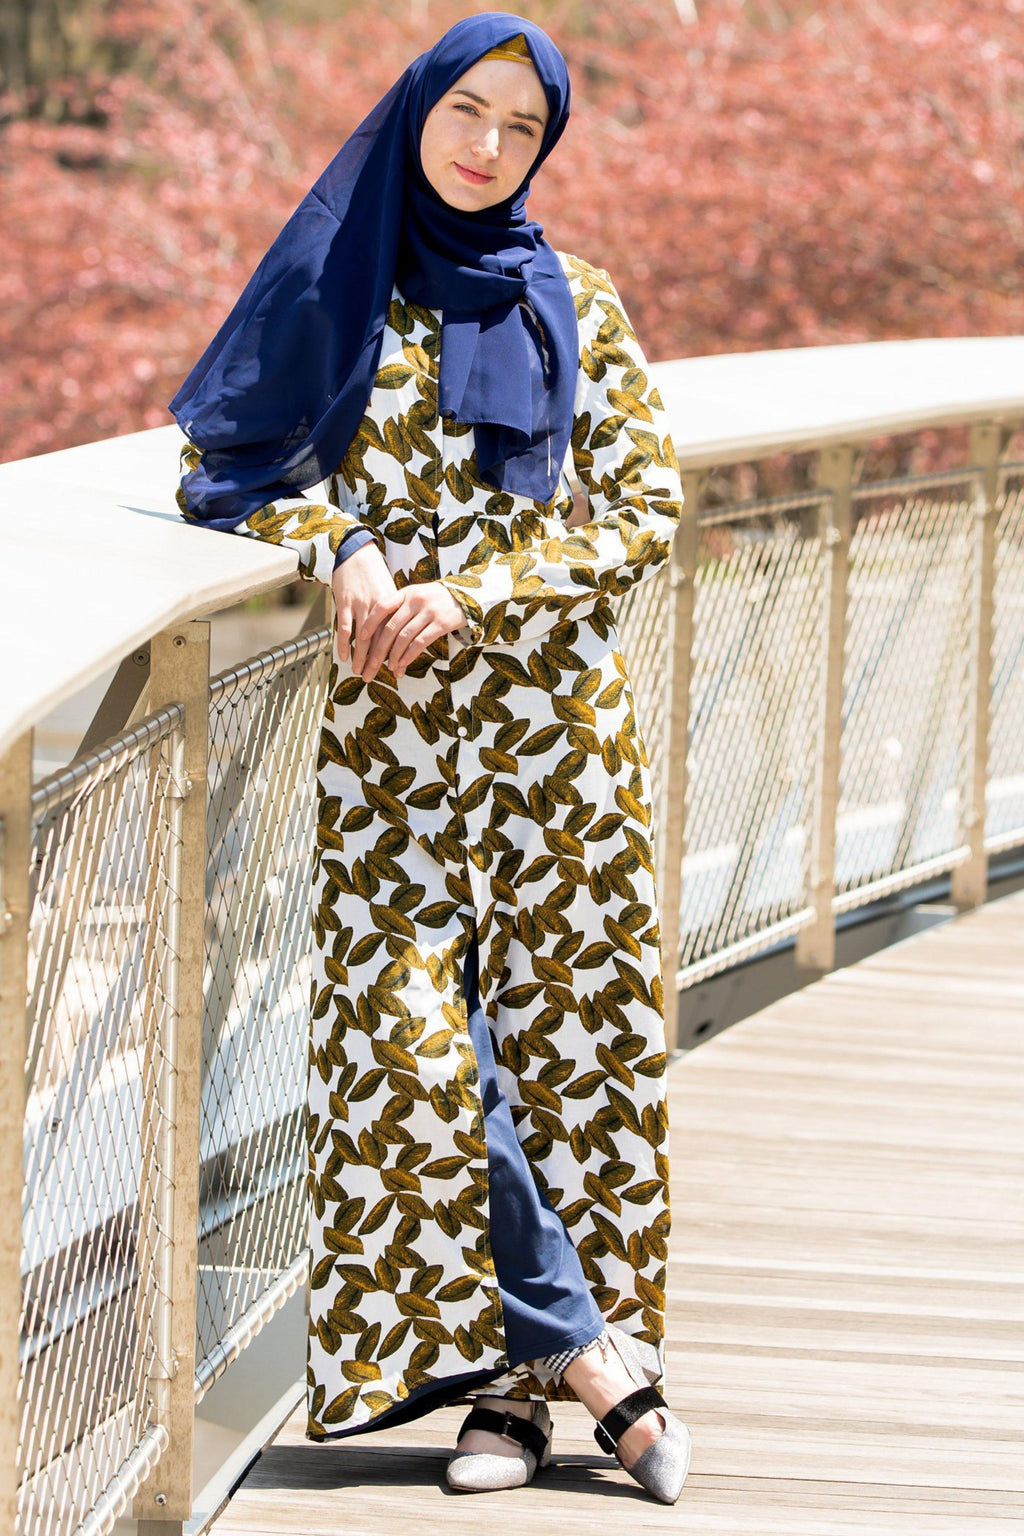 Hello Yellow Leaf Non-Sheer Maxi Cardigan - Abaya, Hijabs, Jilbabs, on sale now at UrbanModesty.com